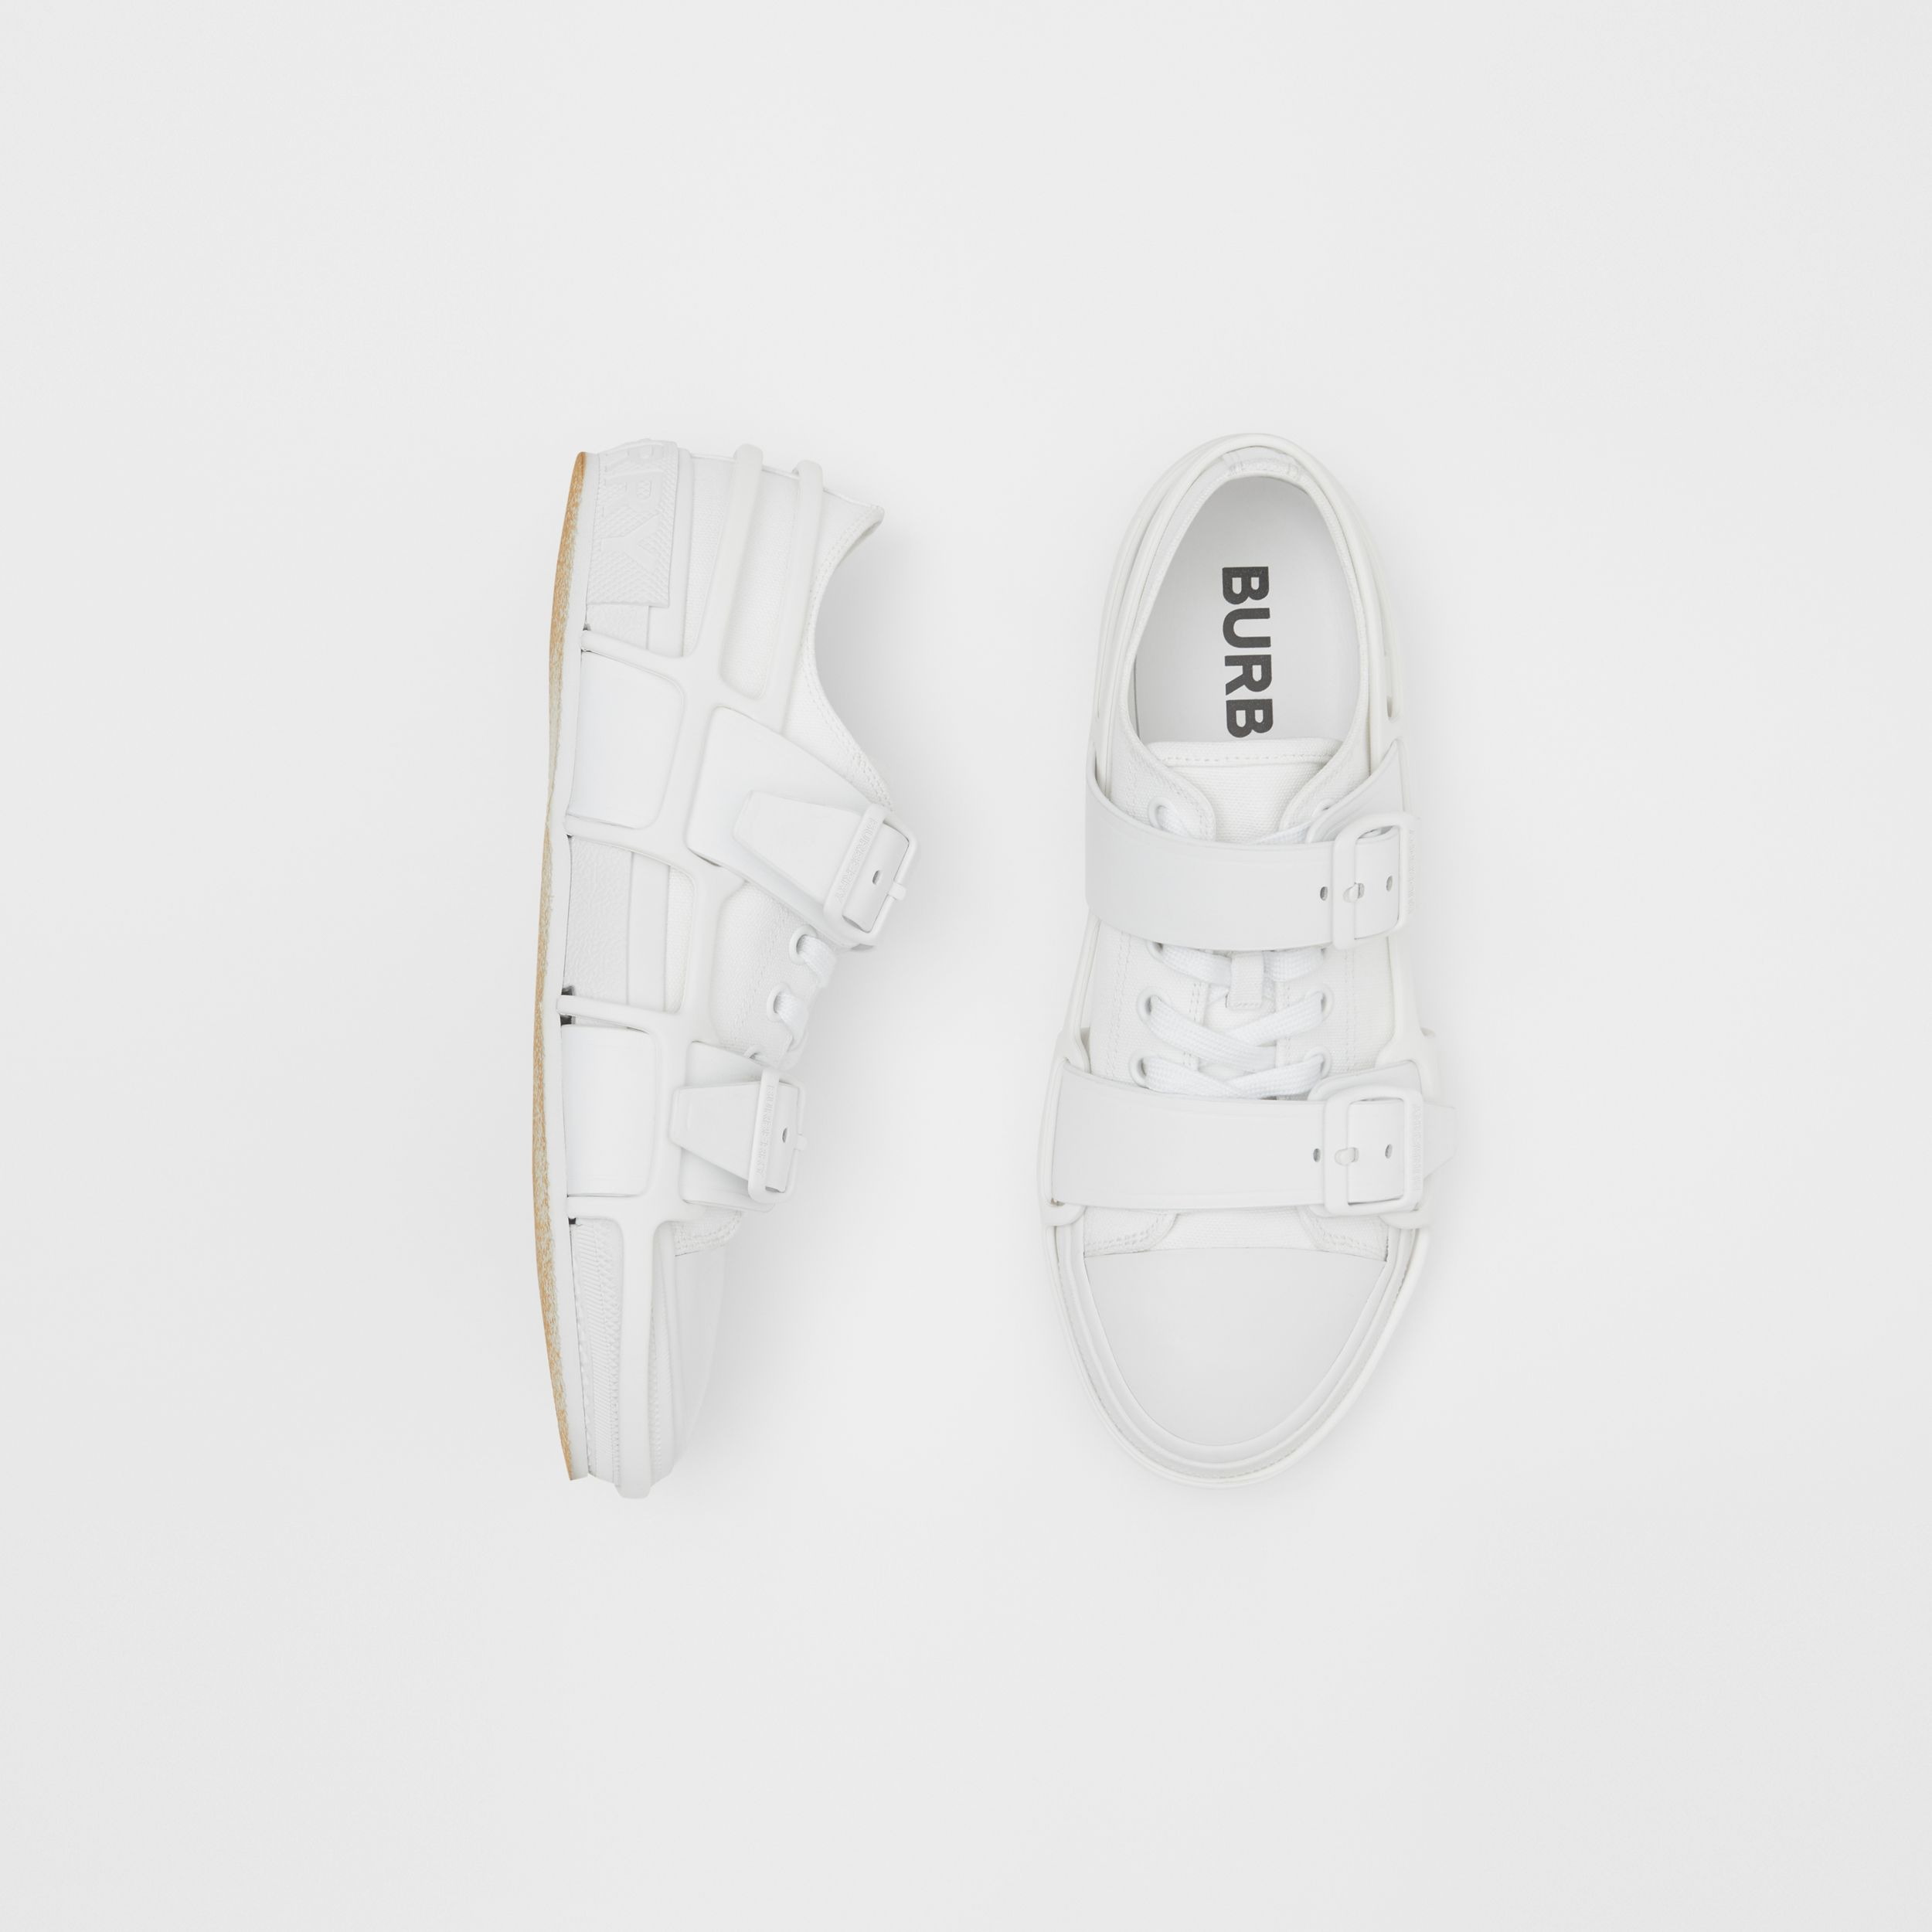 Cotton and Leather Webb Sneakers in White | Burberry - 1